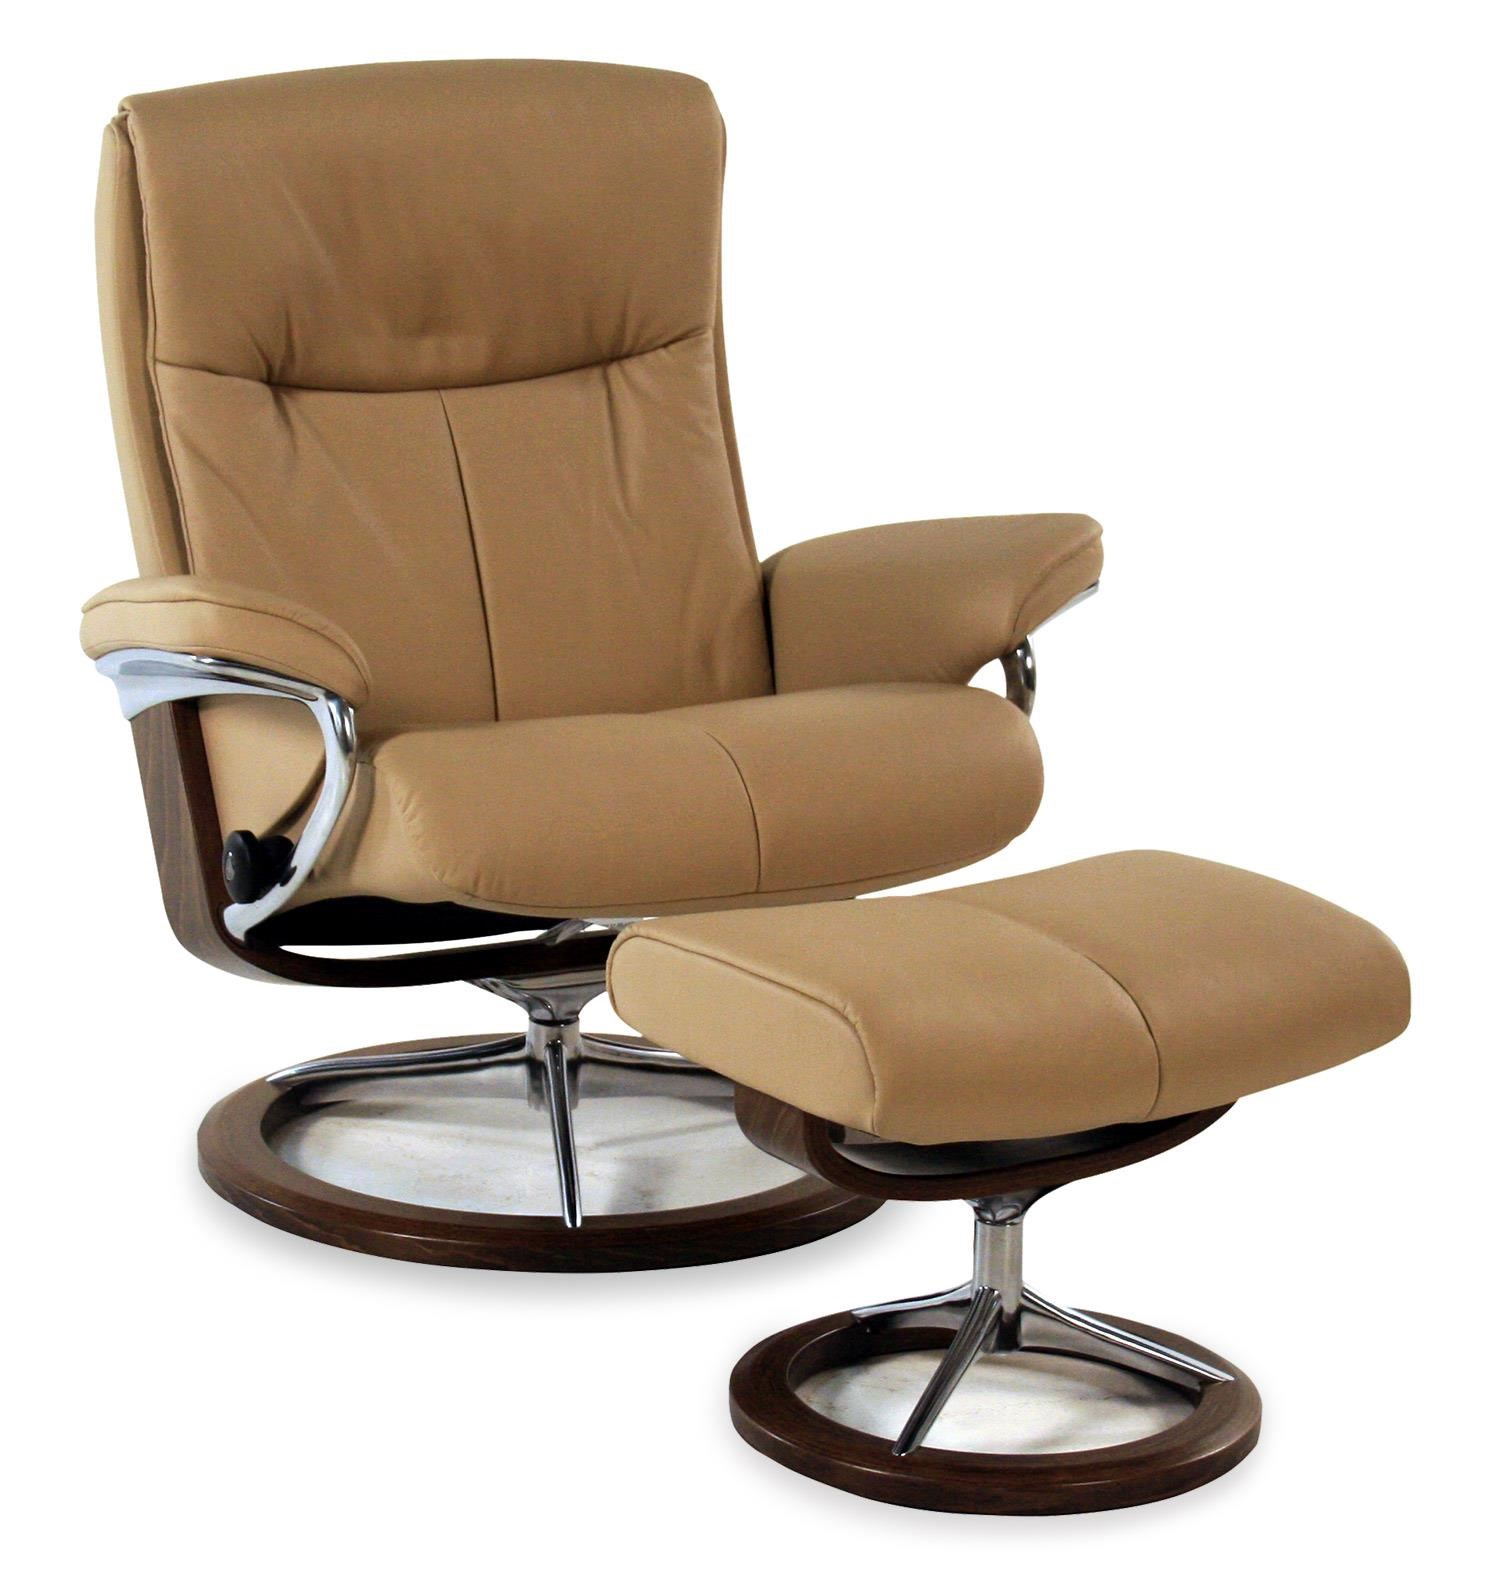 Stressless Chair Prices Stressless By Ekornes Peace Large Signature Reclining